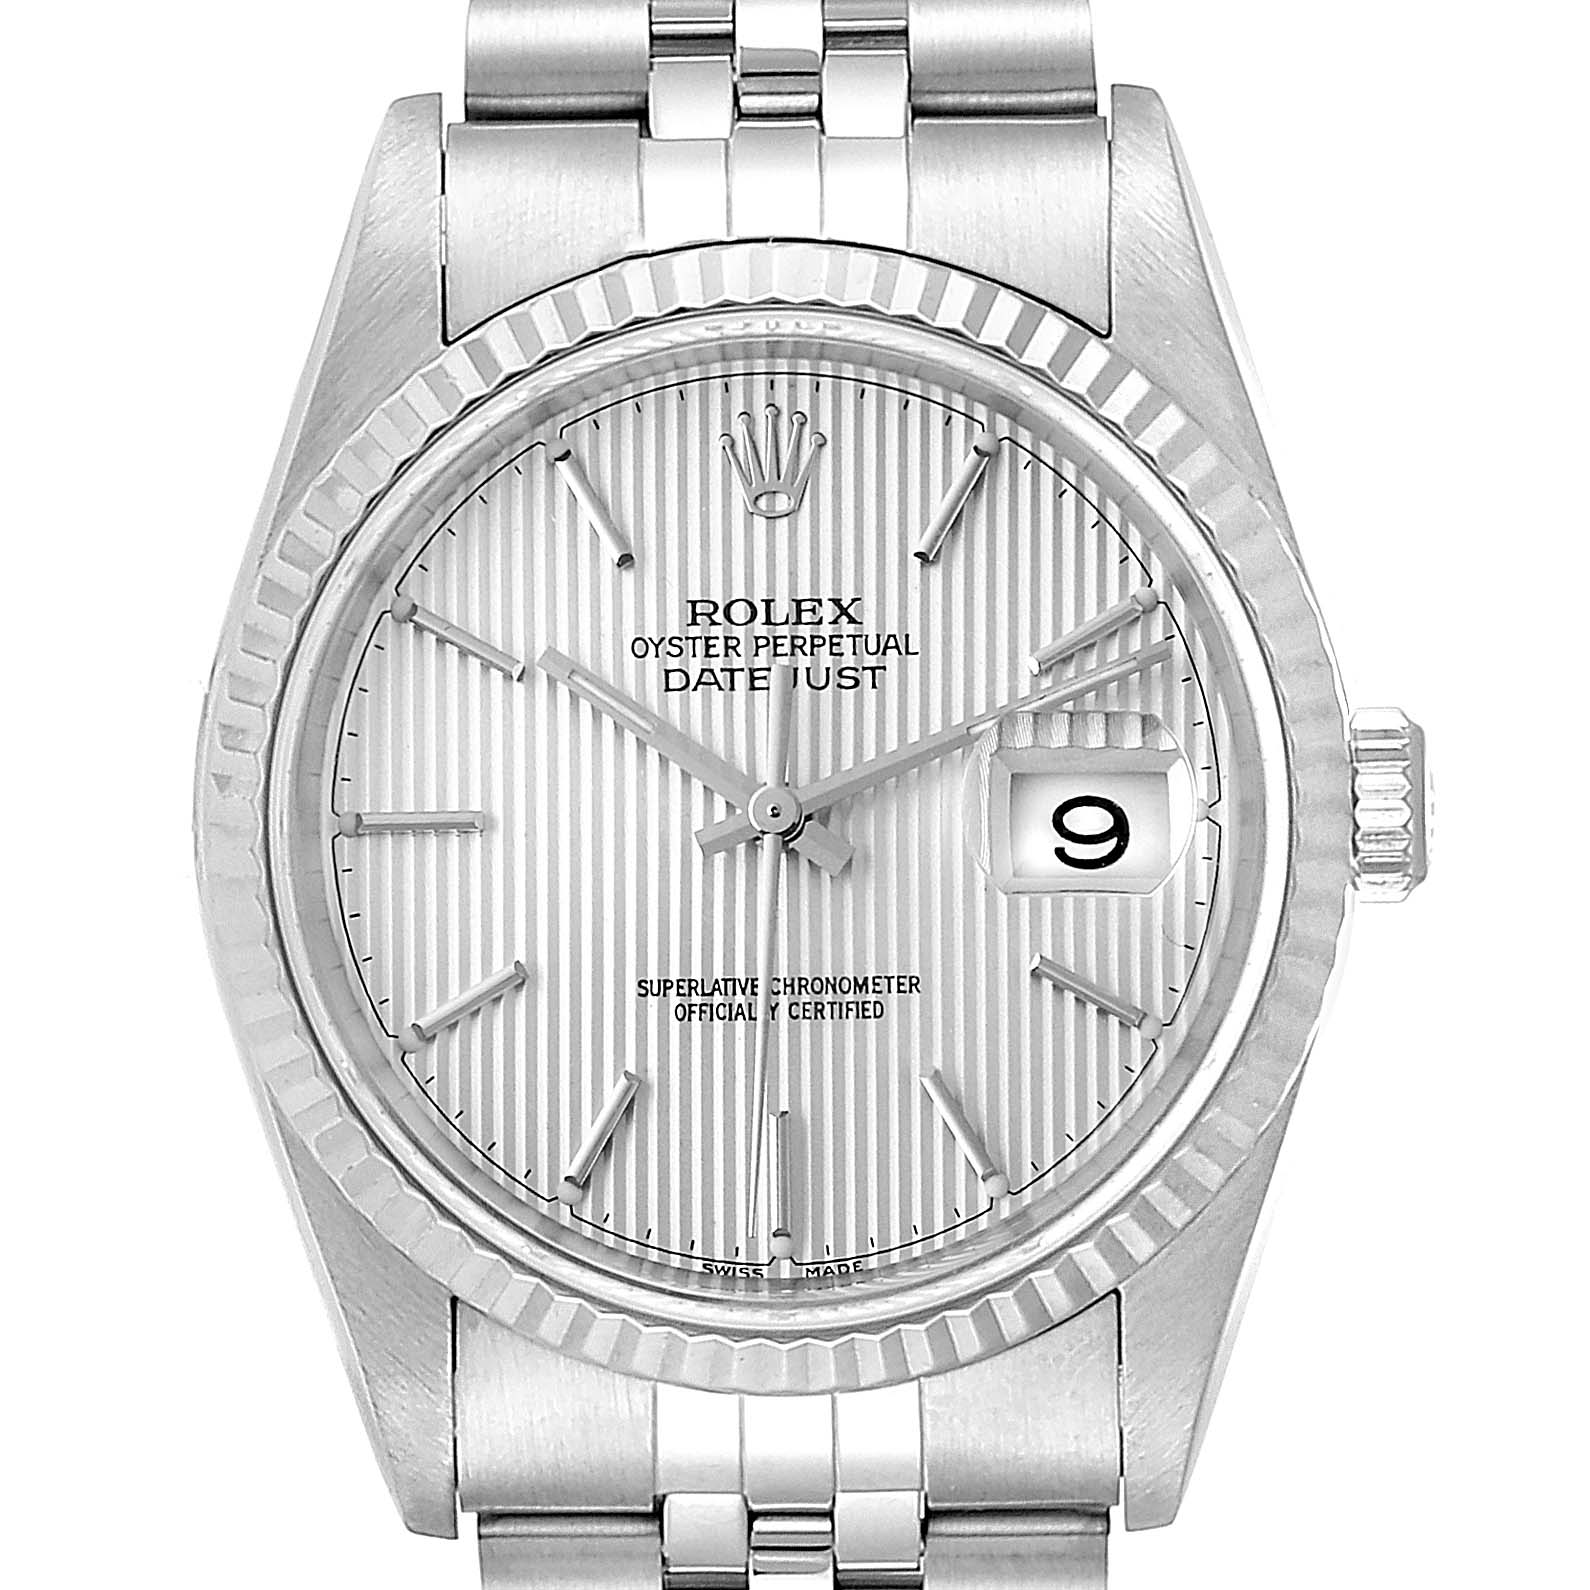 Rolex Datejust 36 Steel White Gold Tapestry Dial Mens Watch 16234 2 ADDED LINKS